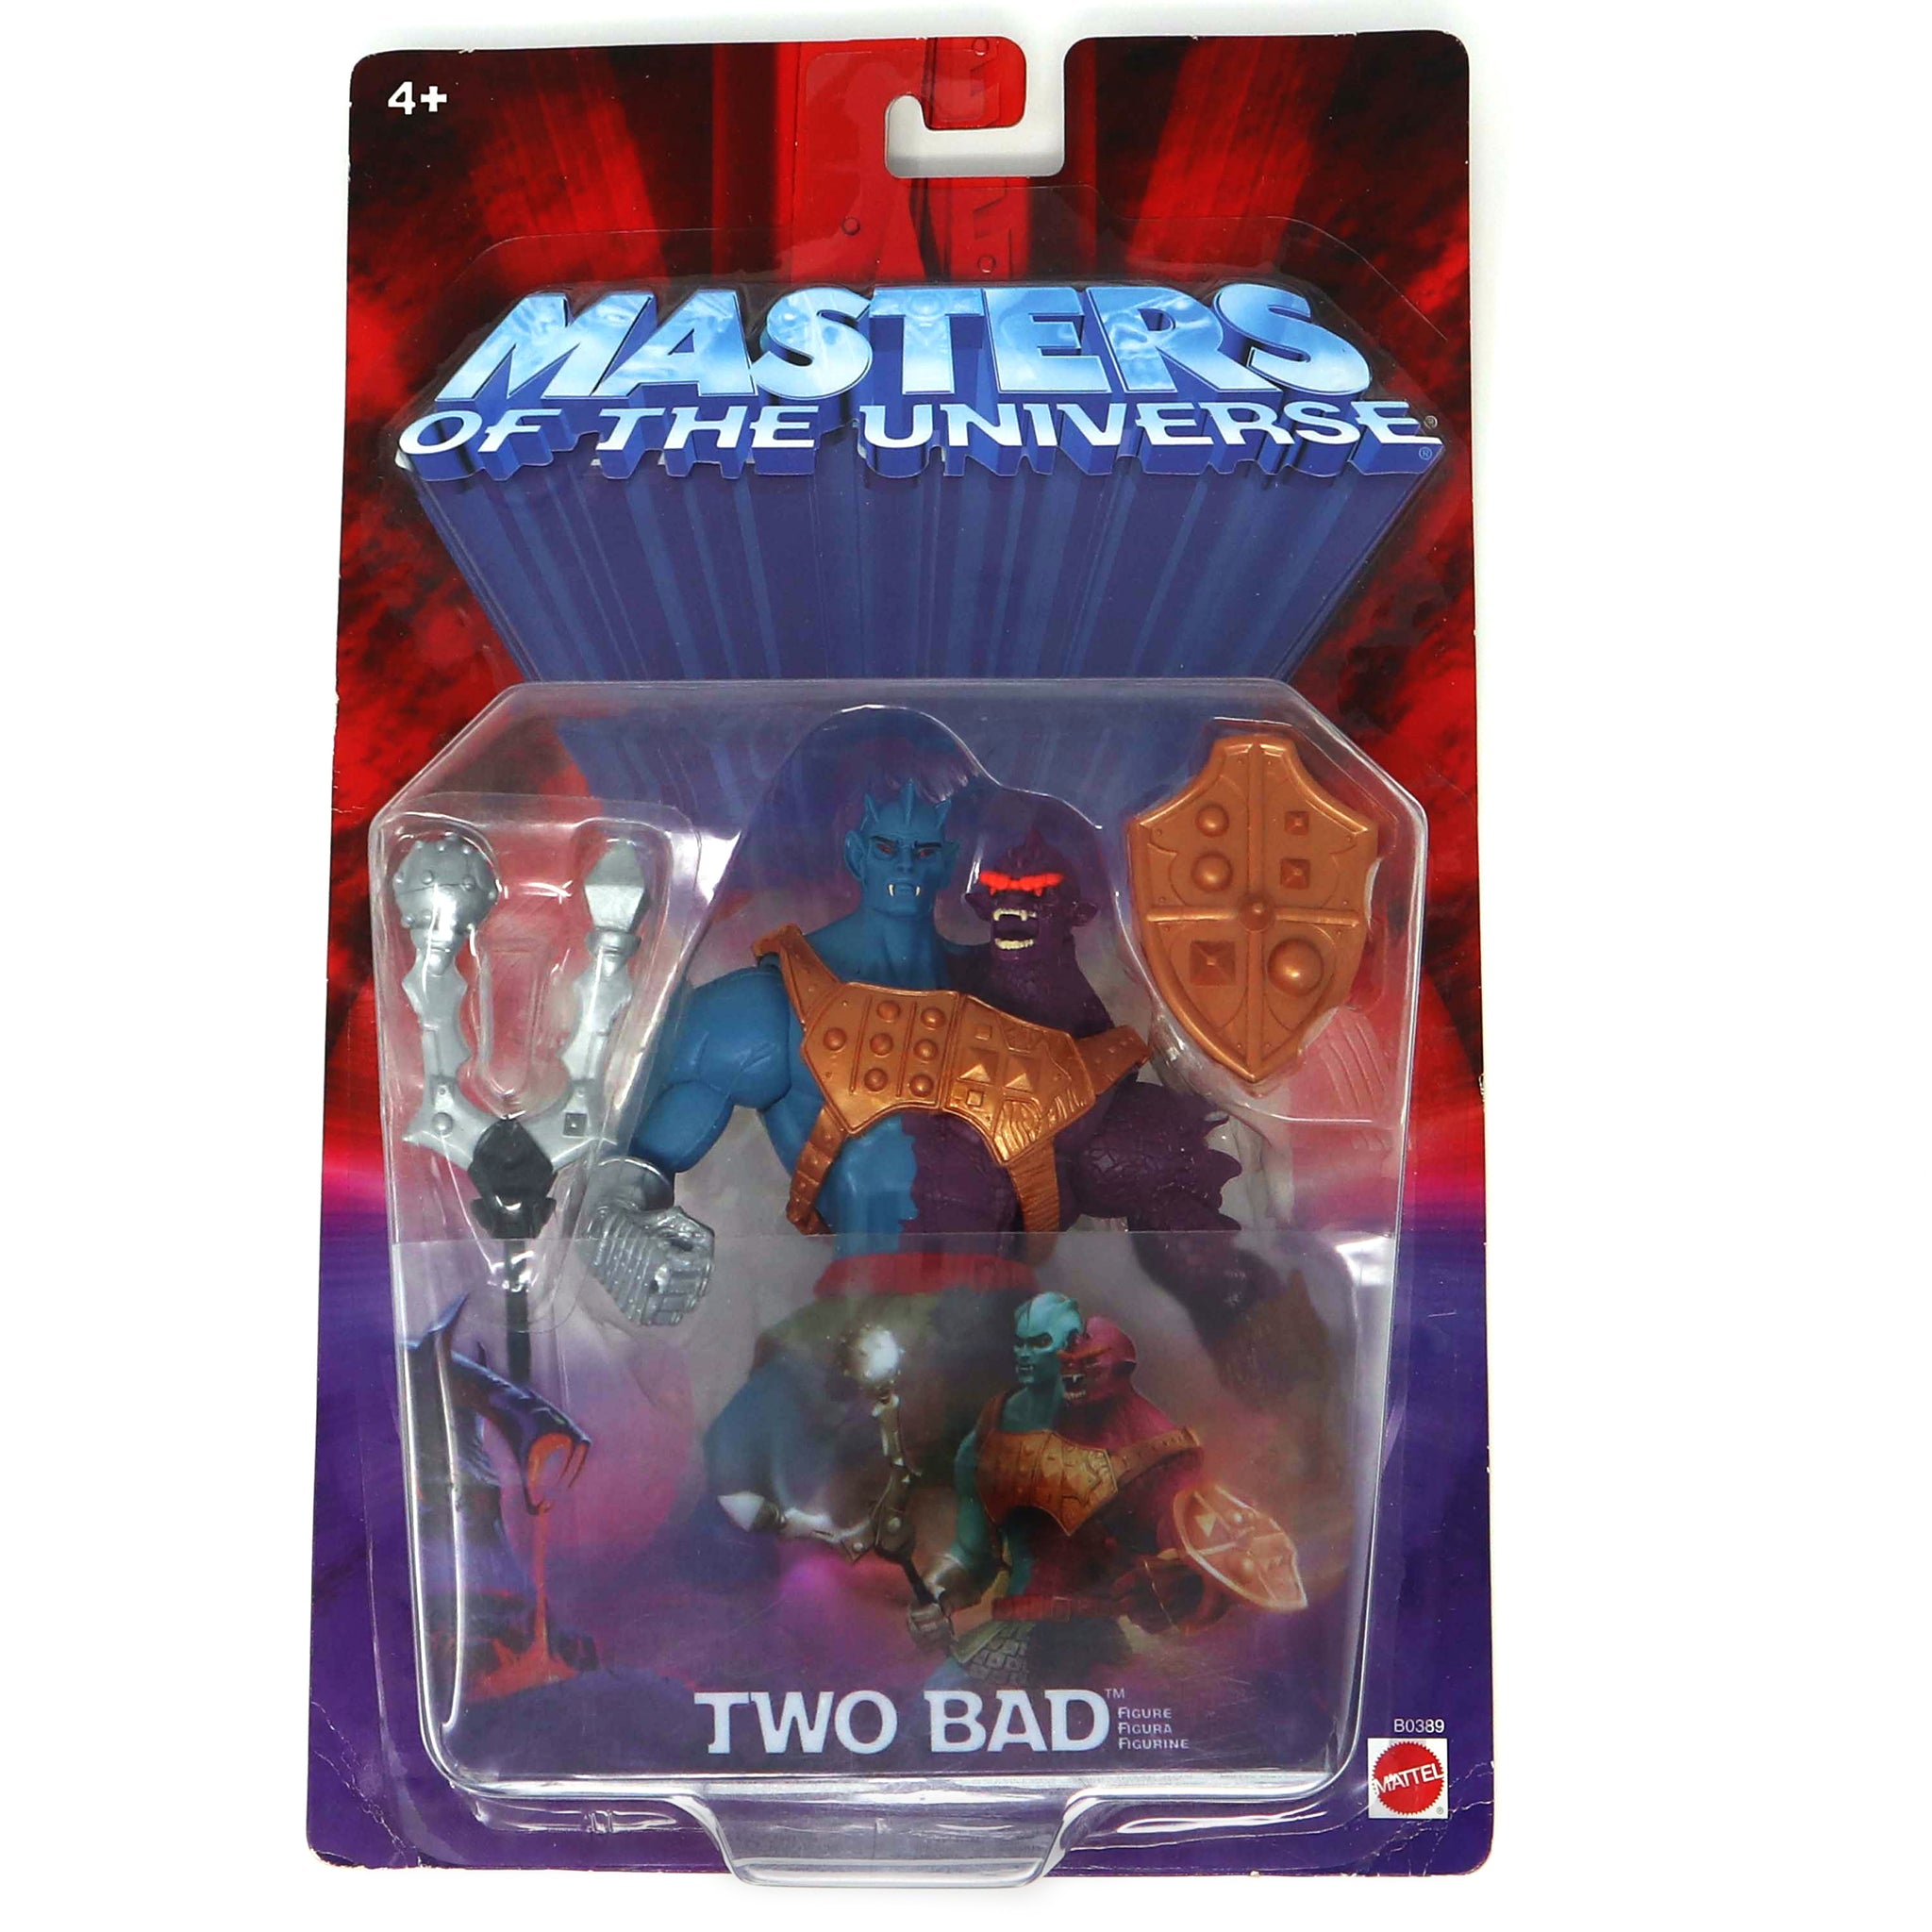 2003 Mattel He-Man MOTU Masters of the Universe Modern Series Two Bad Action Figure Carded MOC